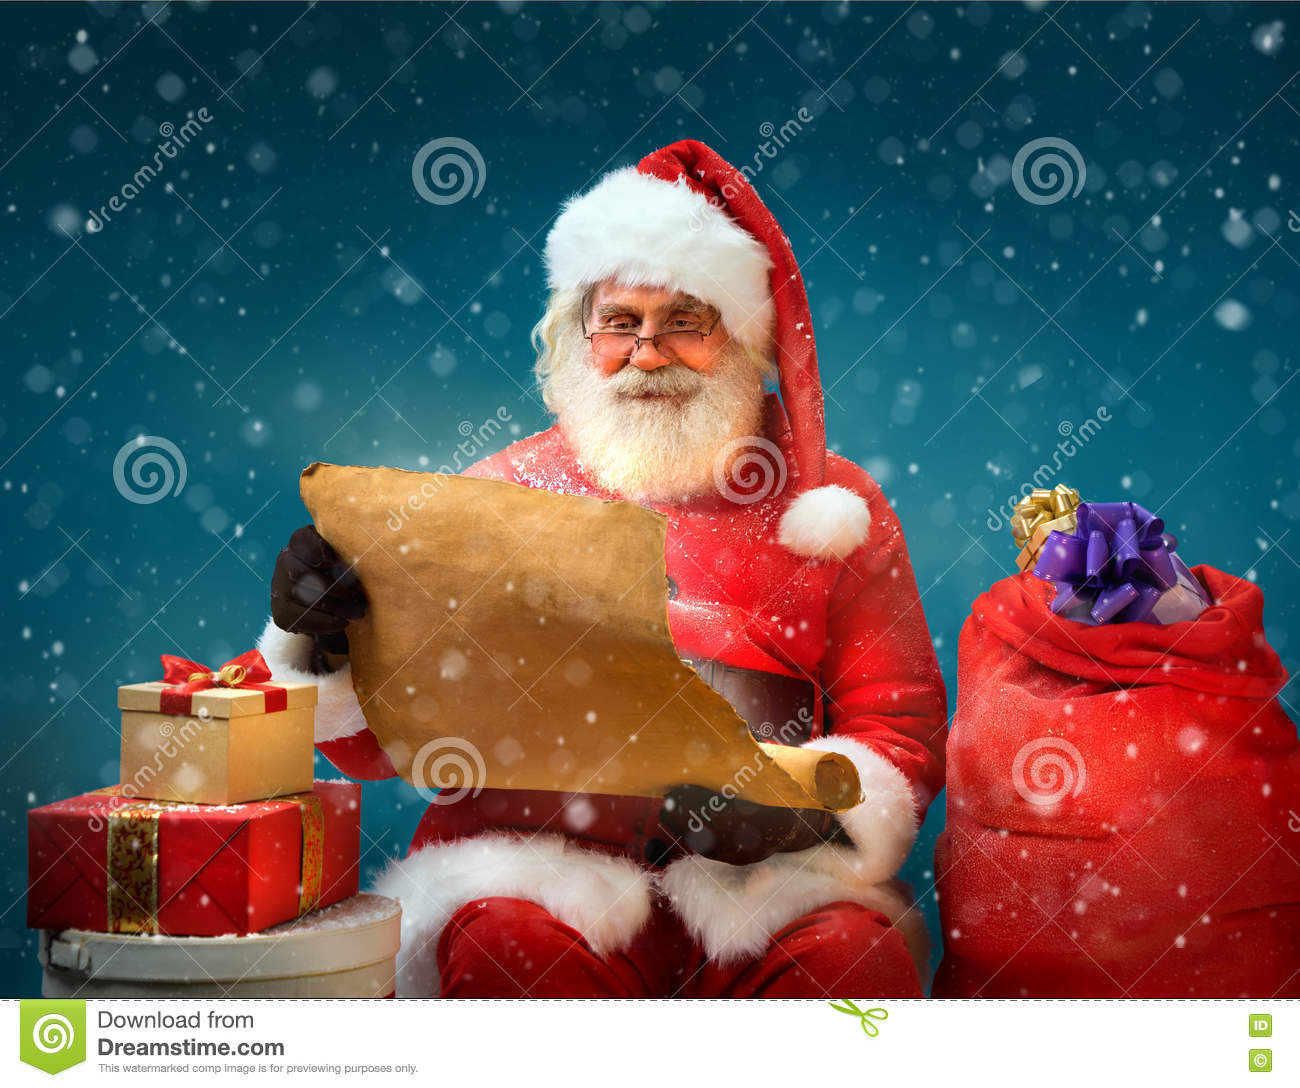 True Santa Claus reads long list of gifts for children on blue background.